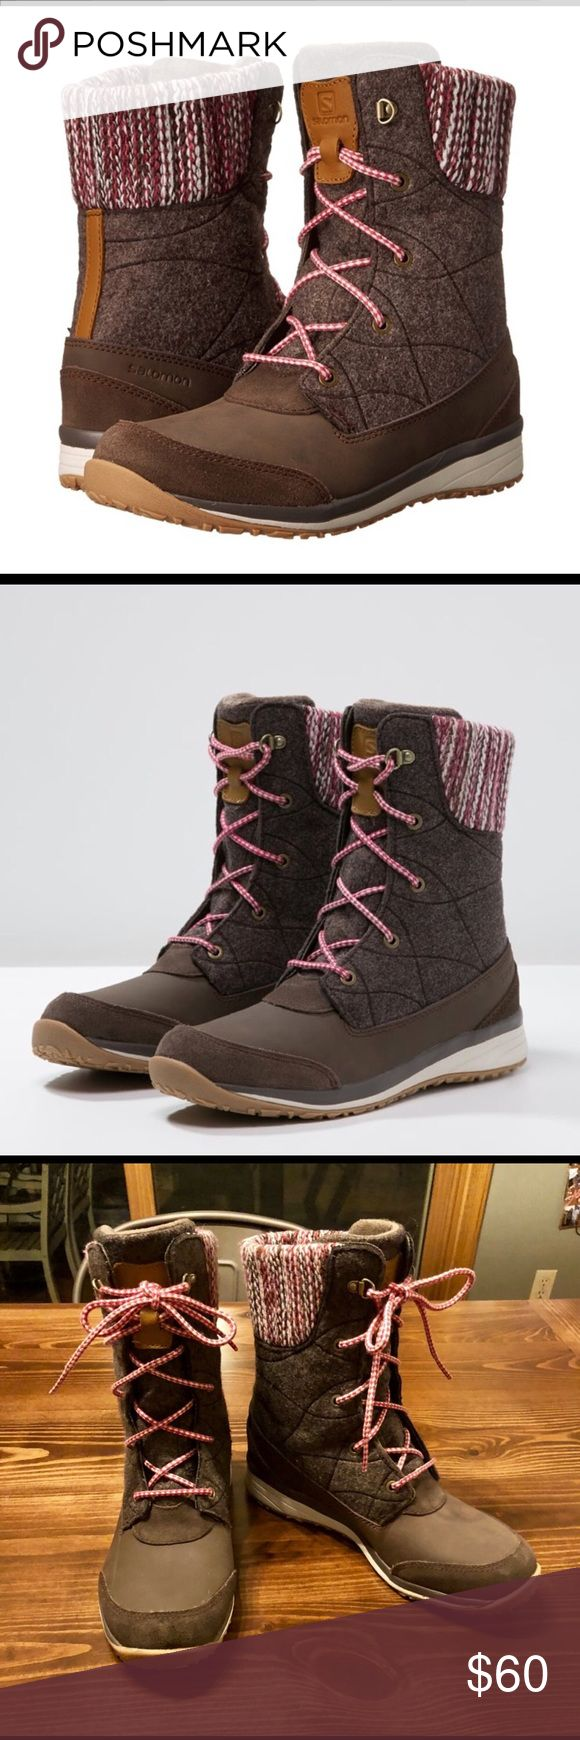 Salomon hime winter boot Only worn a couple times, like new condition. Waterproof Salomon Shoes Winter & Rain Boots